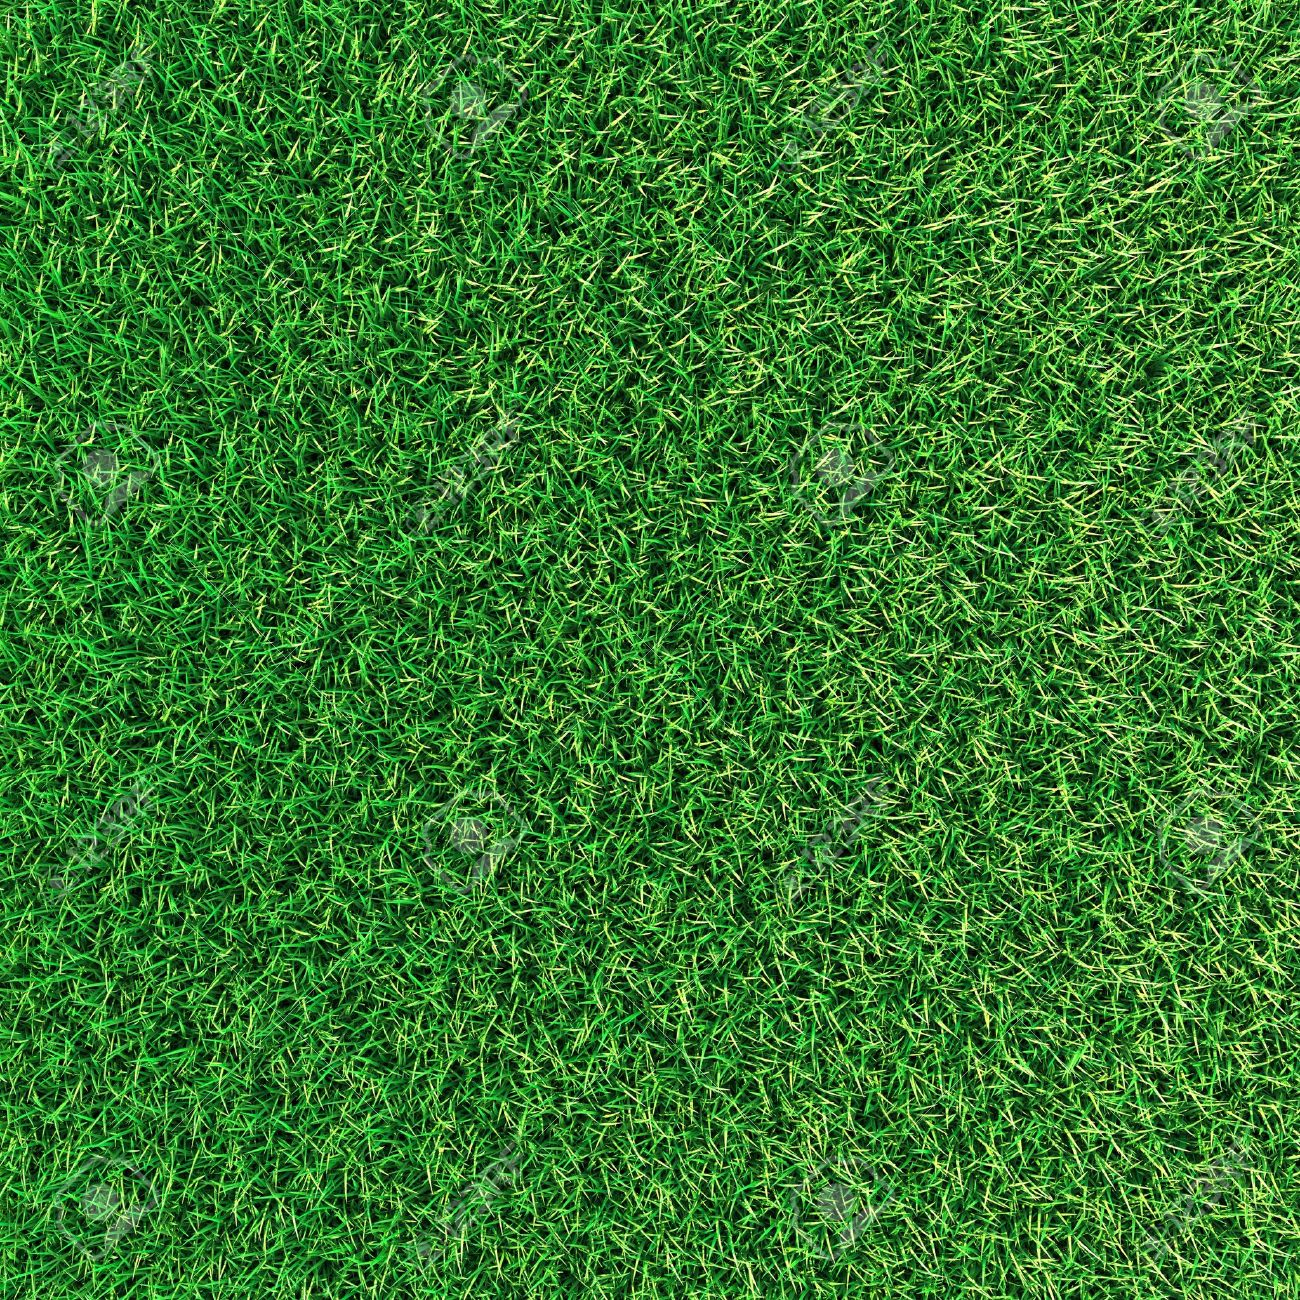 Green grass background texture. Stock Photo - 12076325